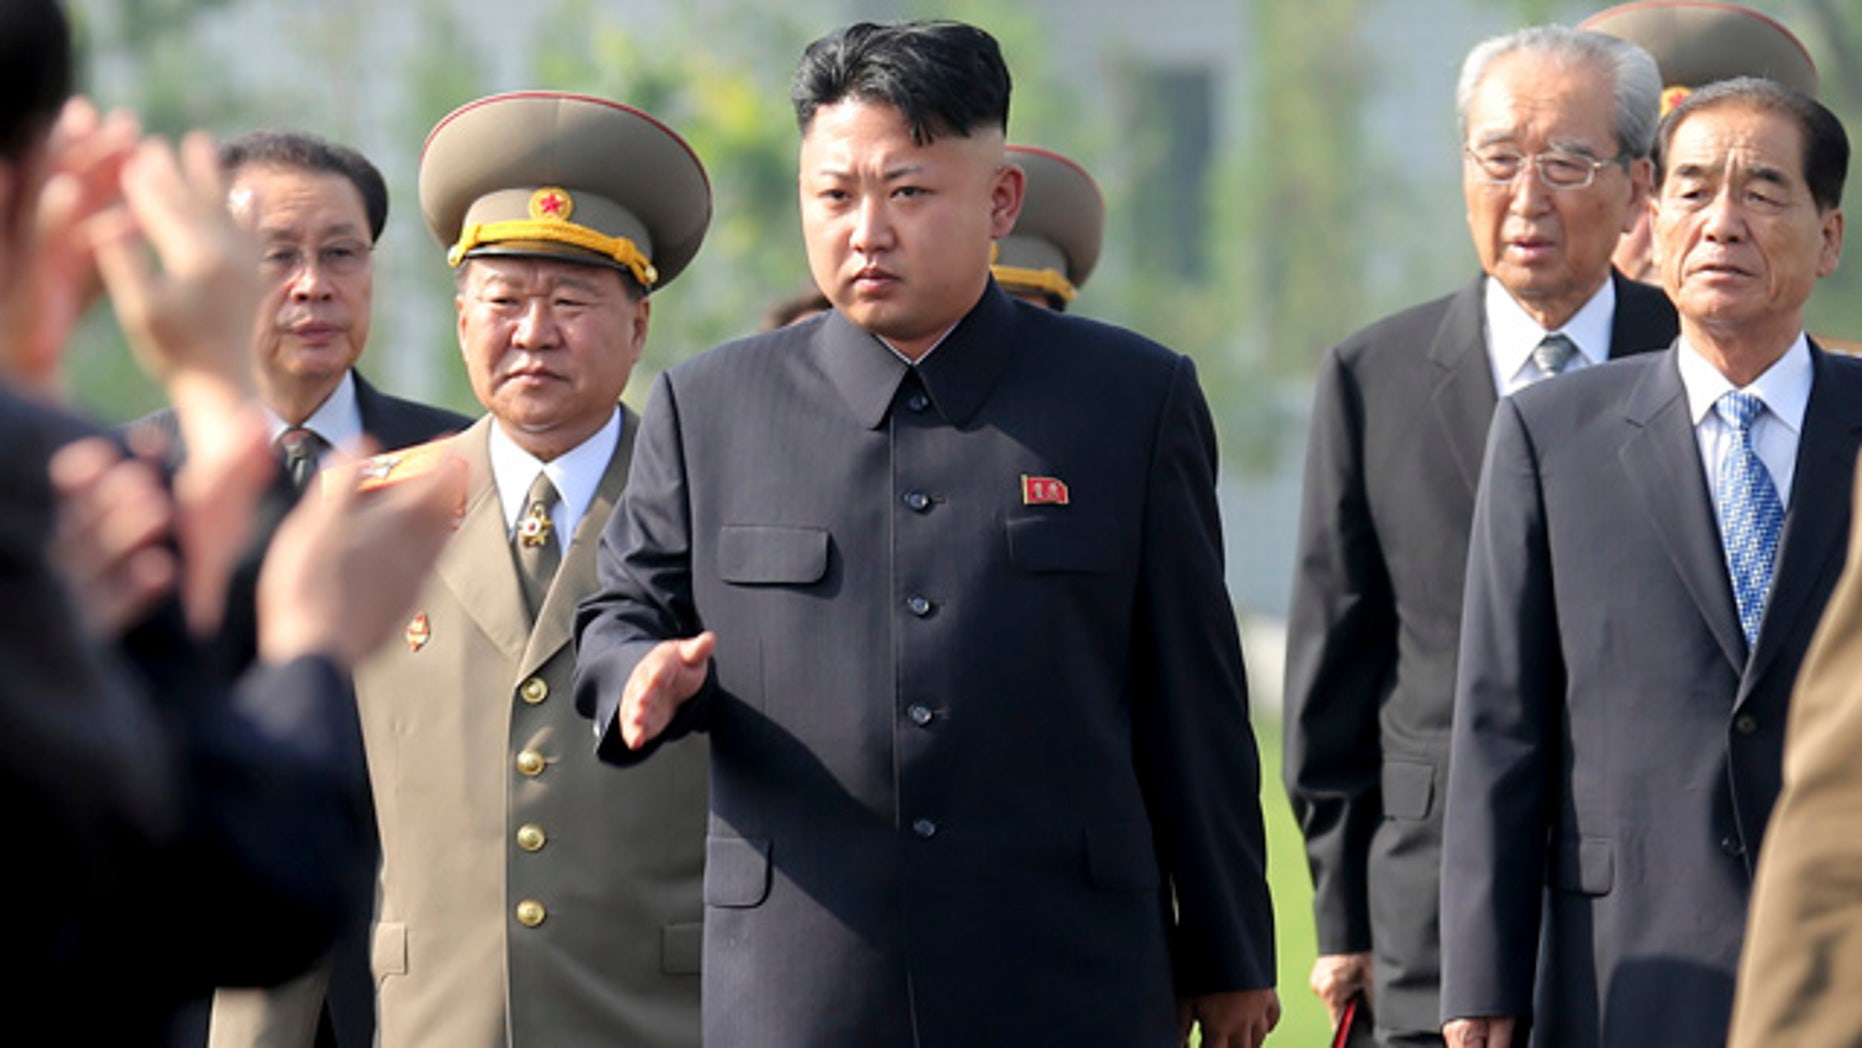 FILE - In this July 25, 2013 file photo, North Korean leader Kim Jong Un, center, arrives at the cemeteries of fallen fighters of the Korean People's Army Pyongyang. (AP Photo/Wong Maye-E, File)